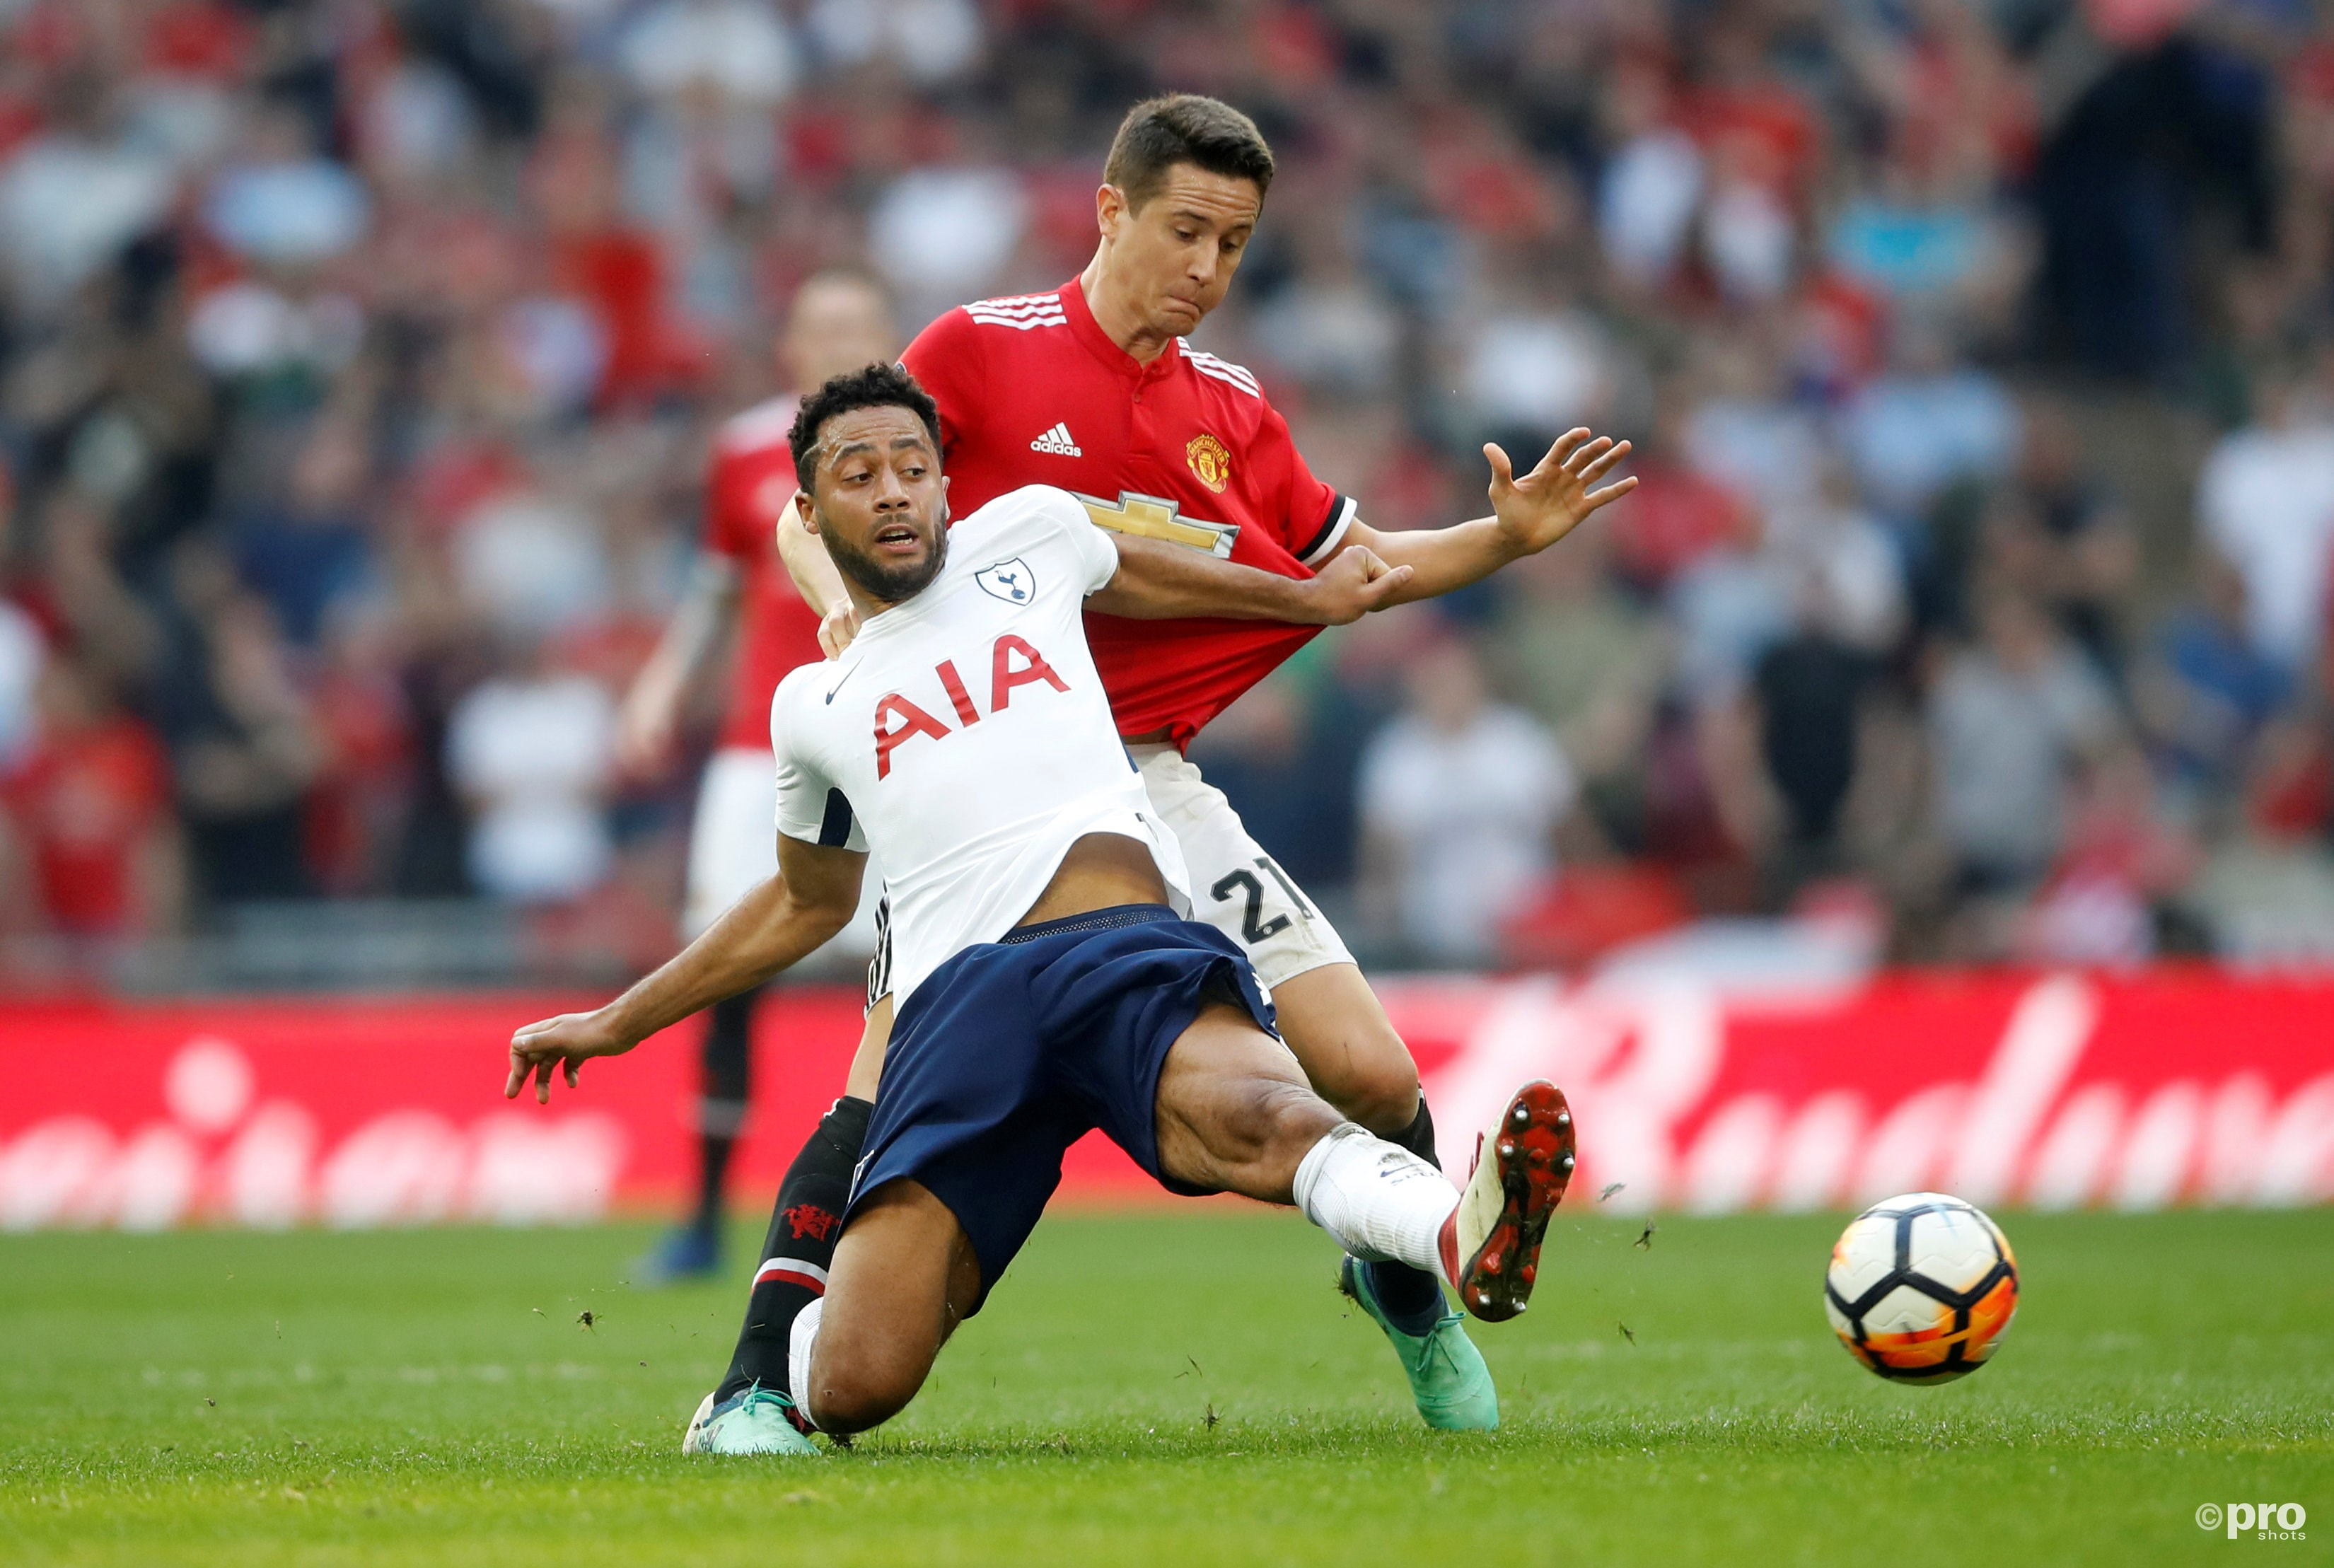 Tottenham's Mousa Dembele in action with Manchester United's Ander Herrera. (PRO SHOTS/Action Images)